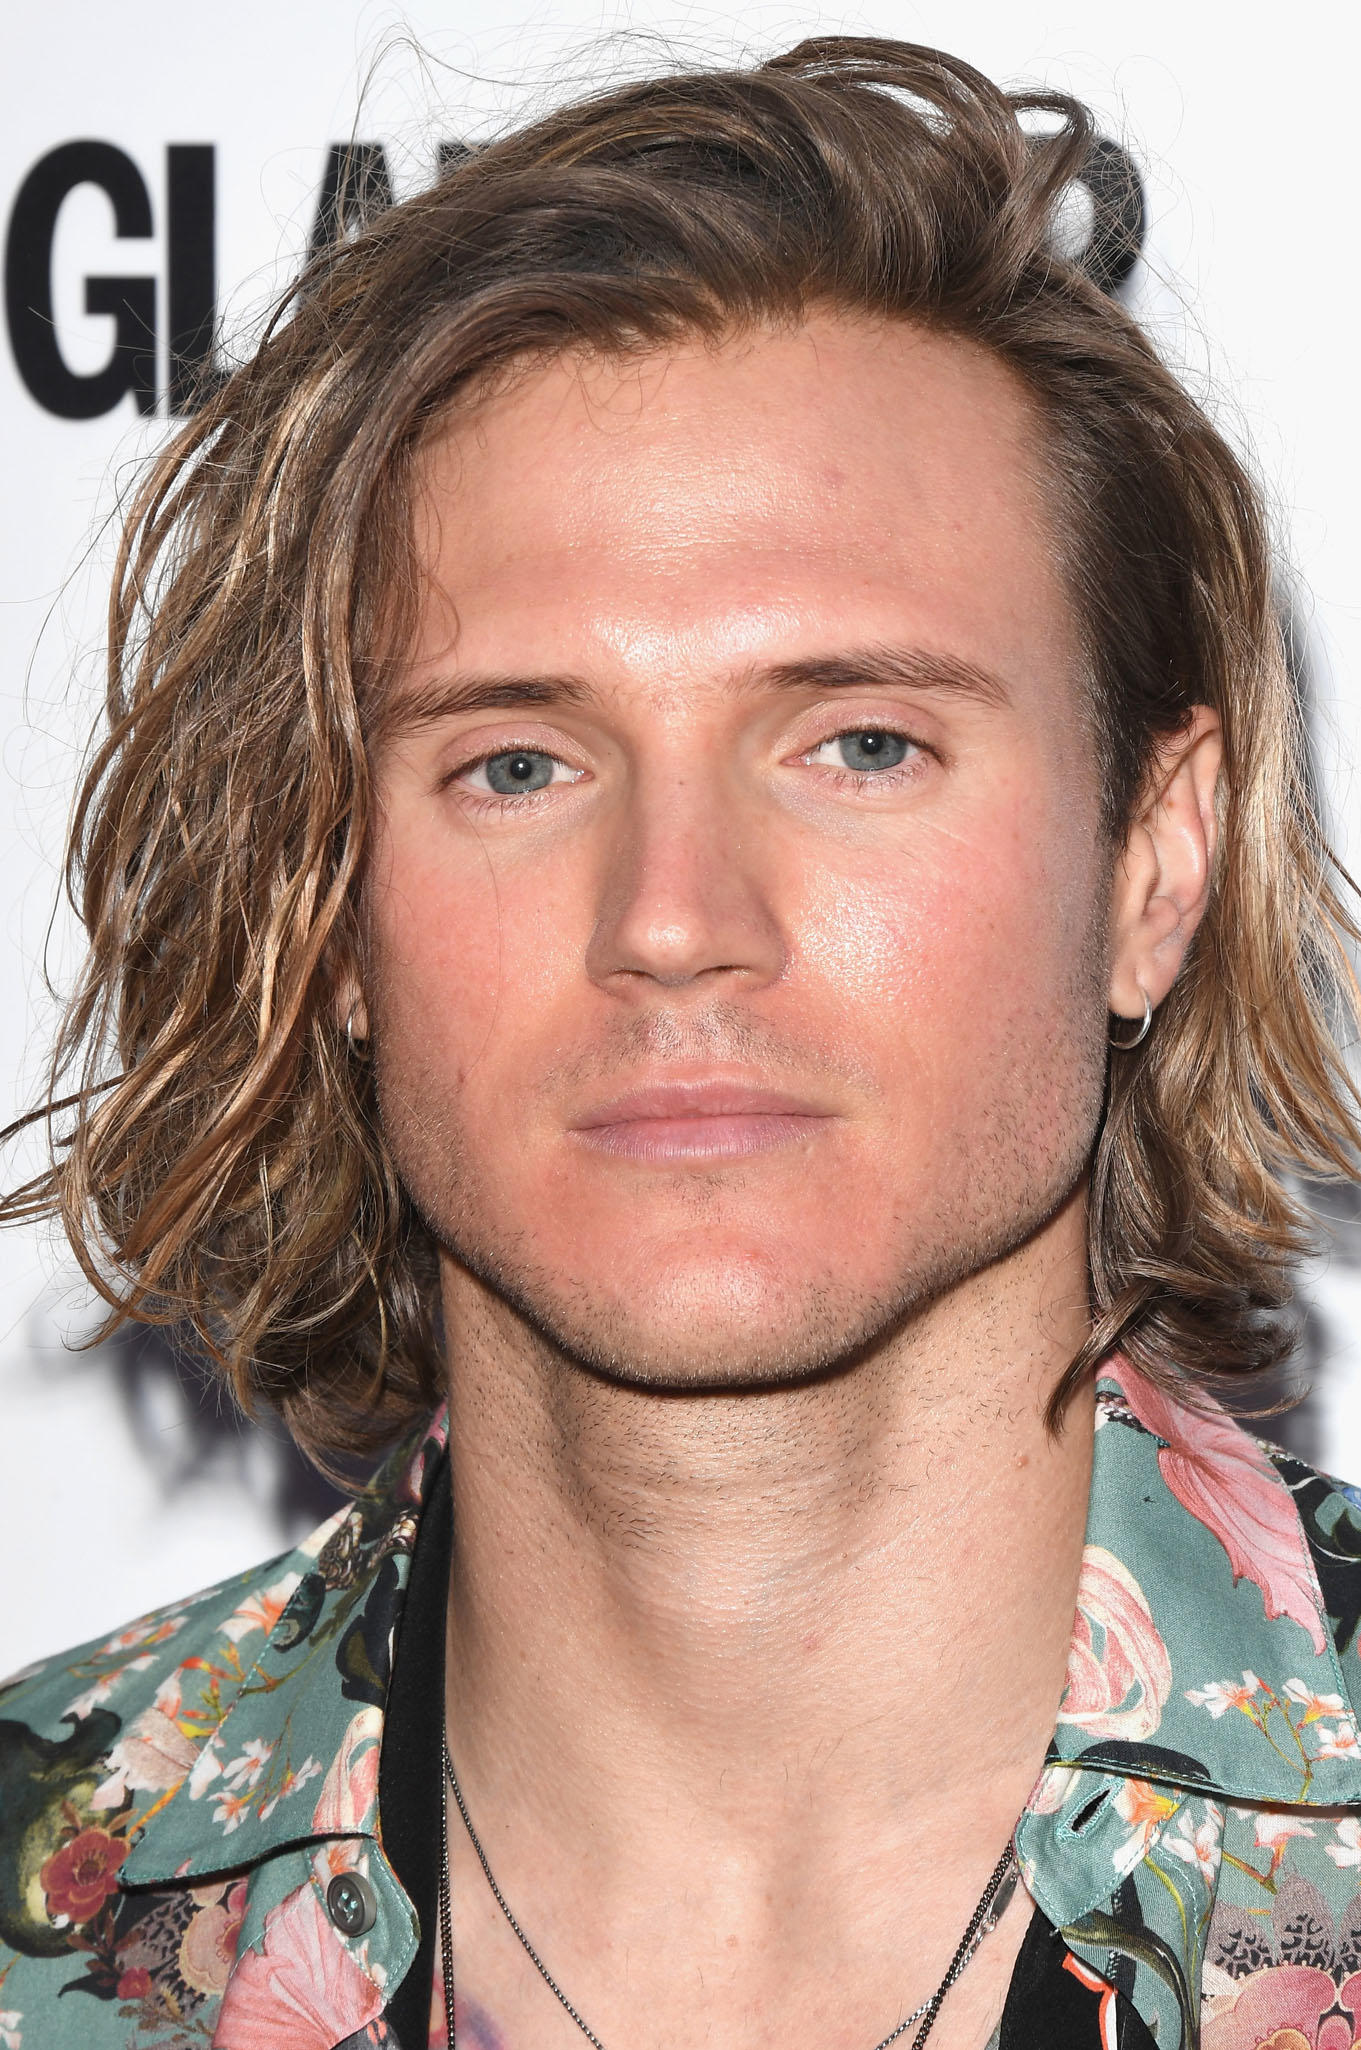 Dougie Poynter at the Glamour Women Of The Year Awards 2017 in London.